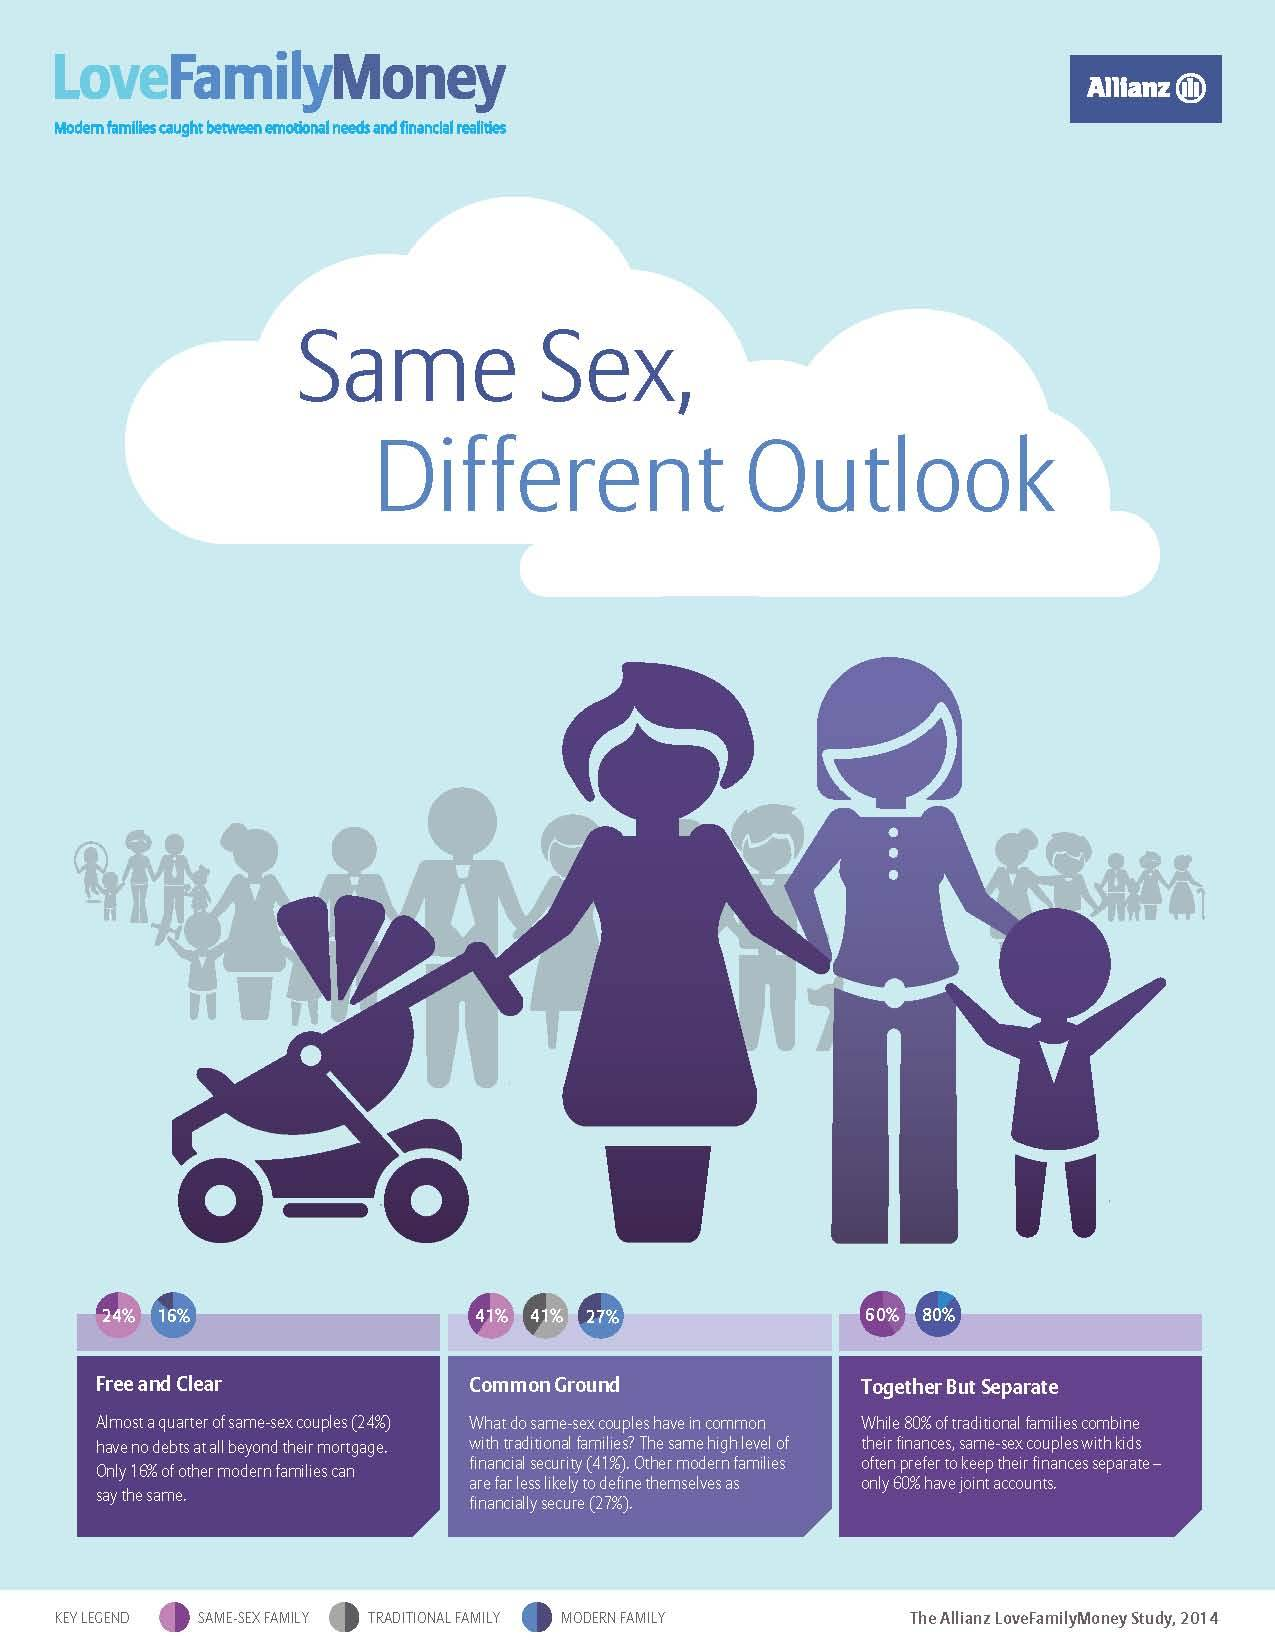 The Allianz LoveFamilyMoney Study: same sex, different outlook. (Graphic: Allianz)